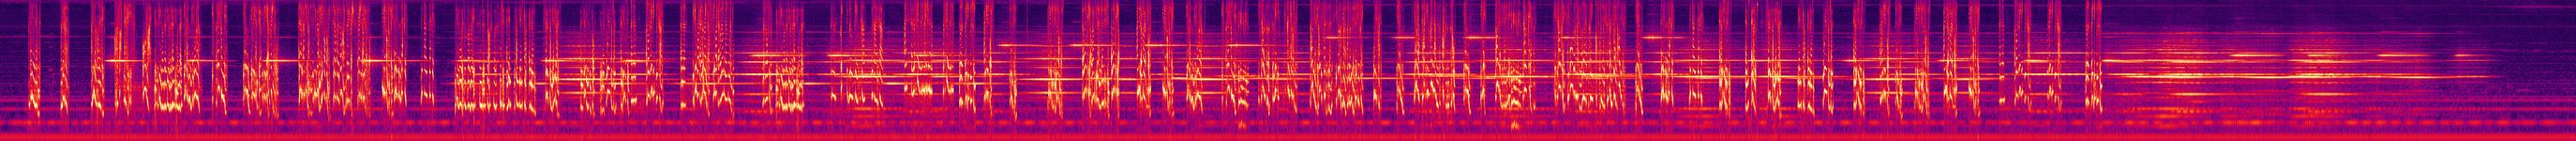 The Dreams - 3. Land - Spectrogram.jpg